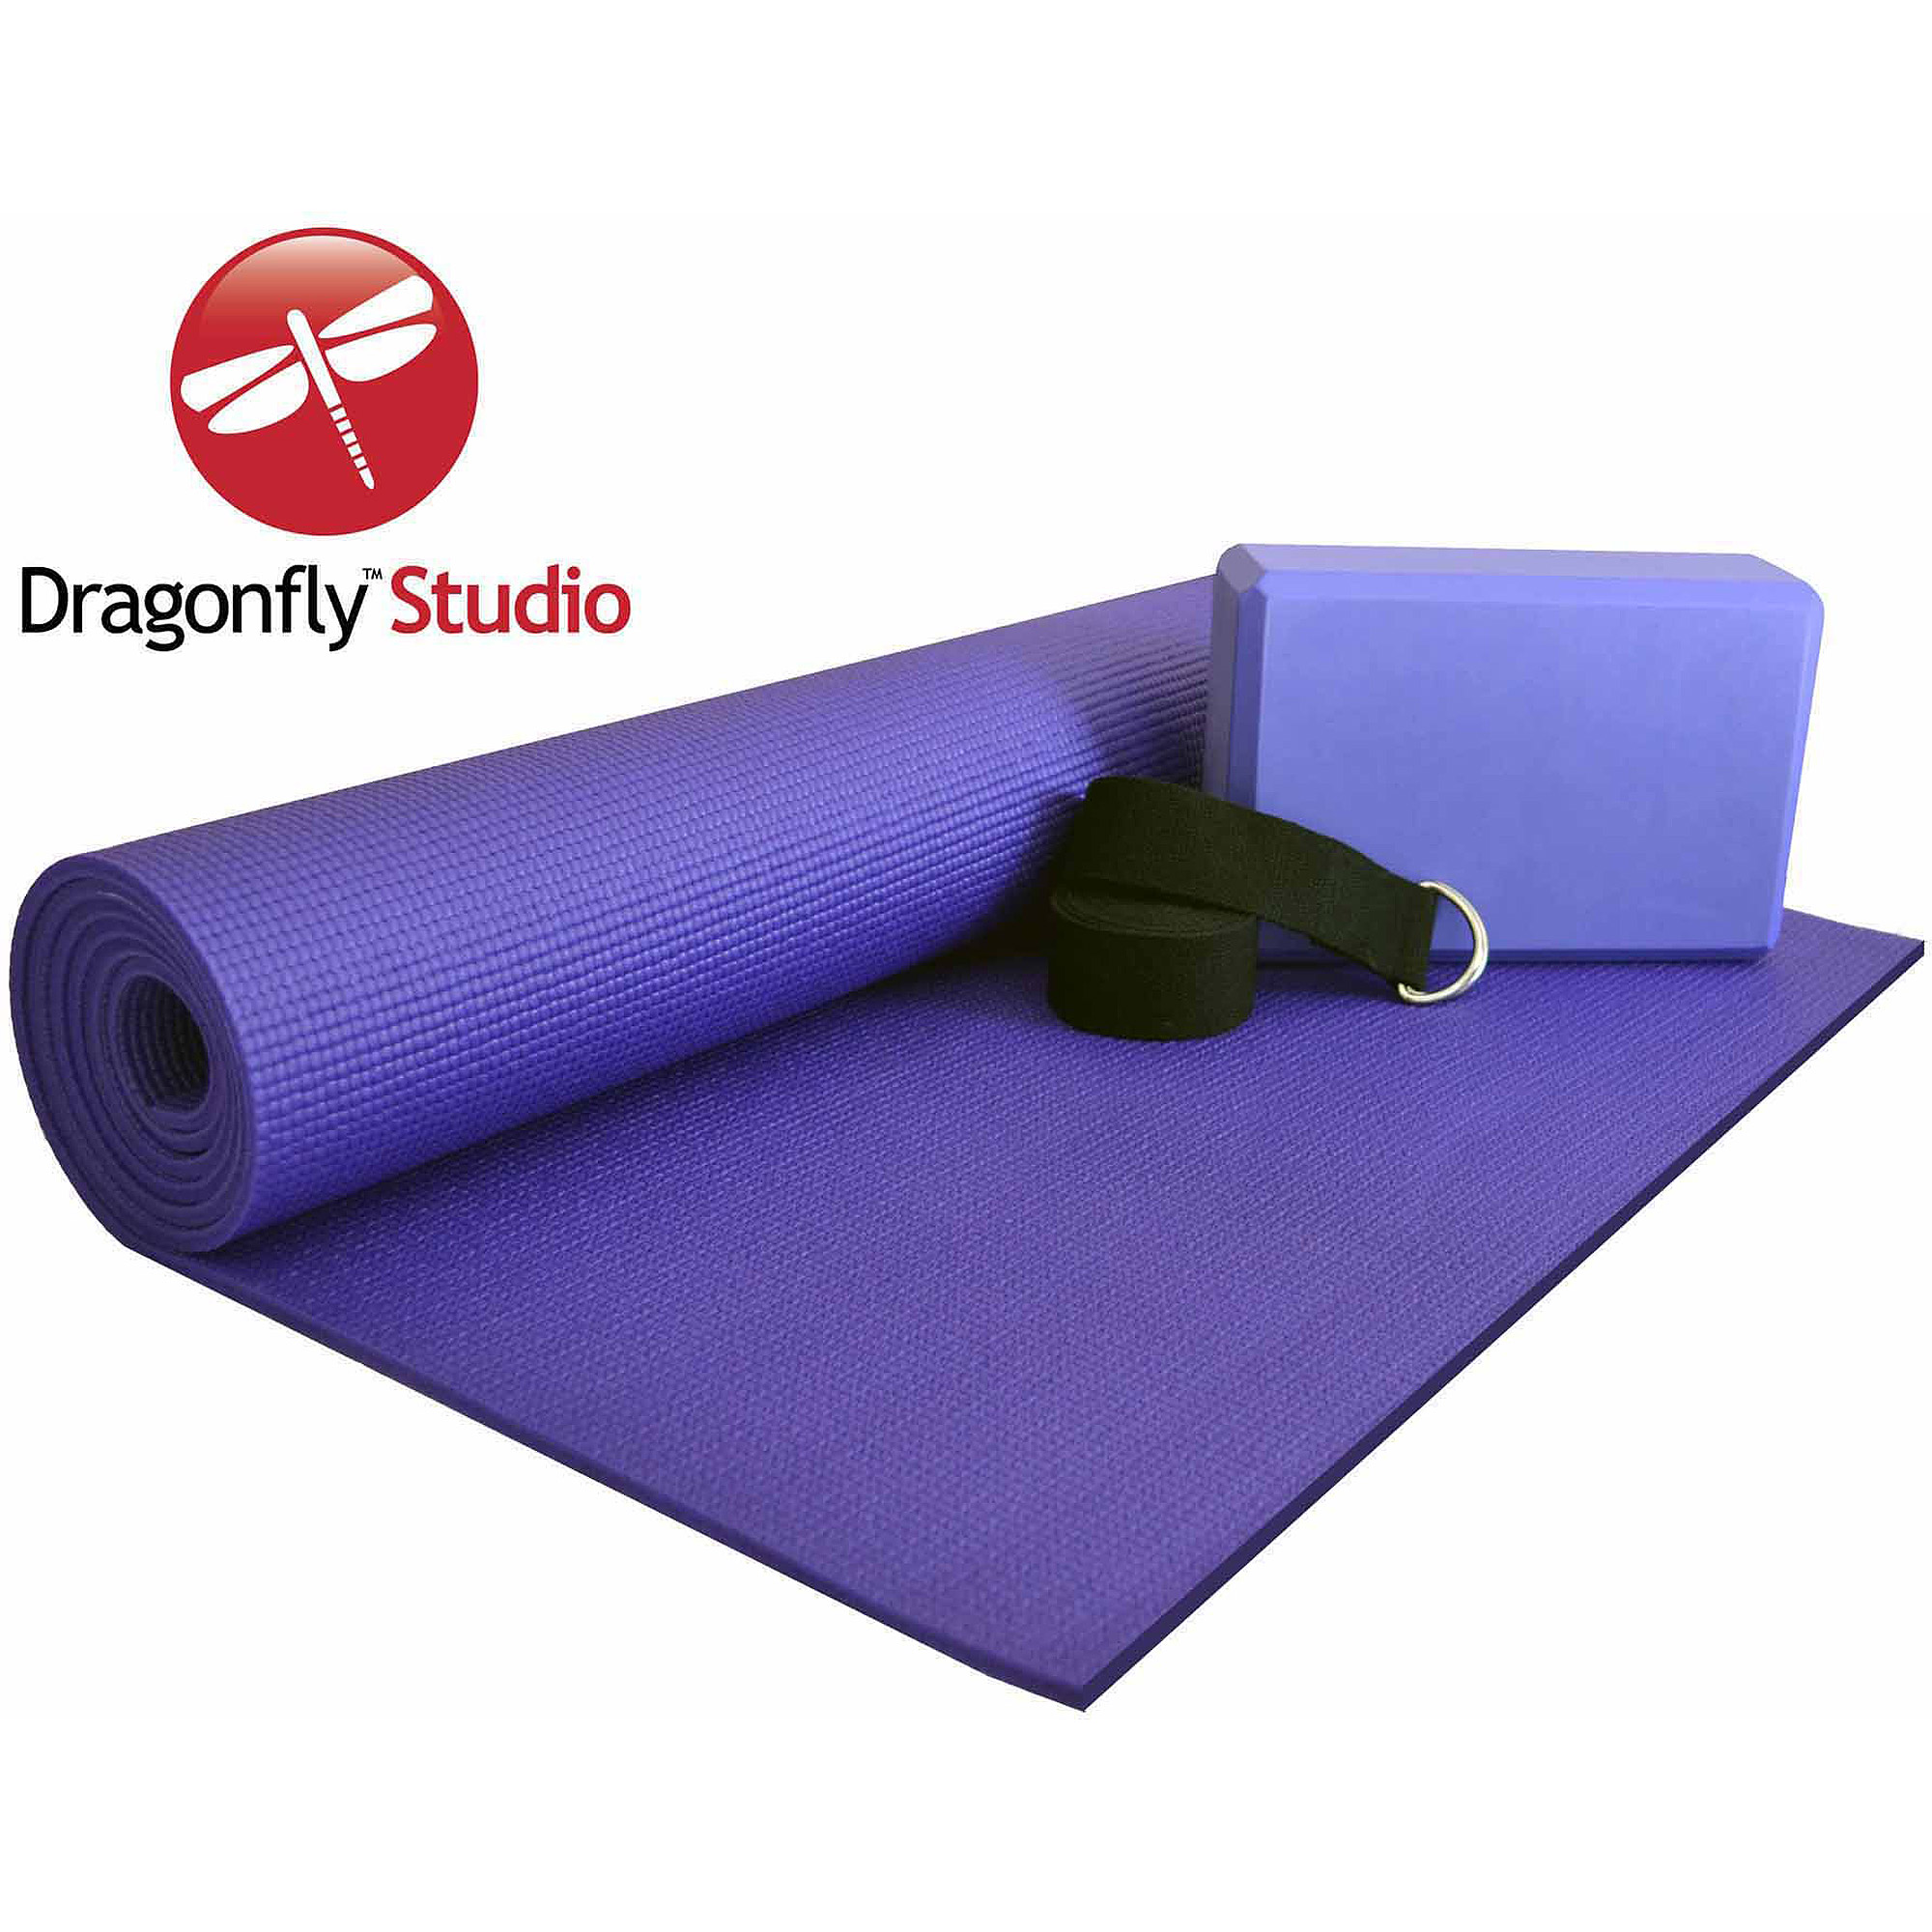 Dragonfly Studio Yoga Kit